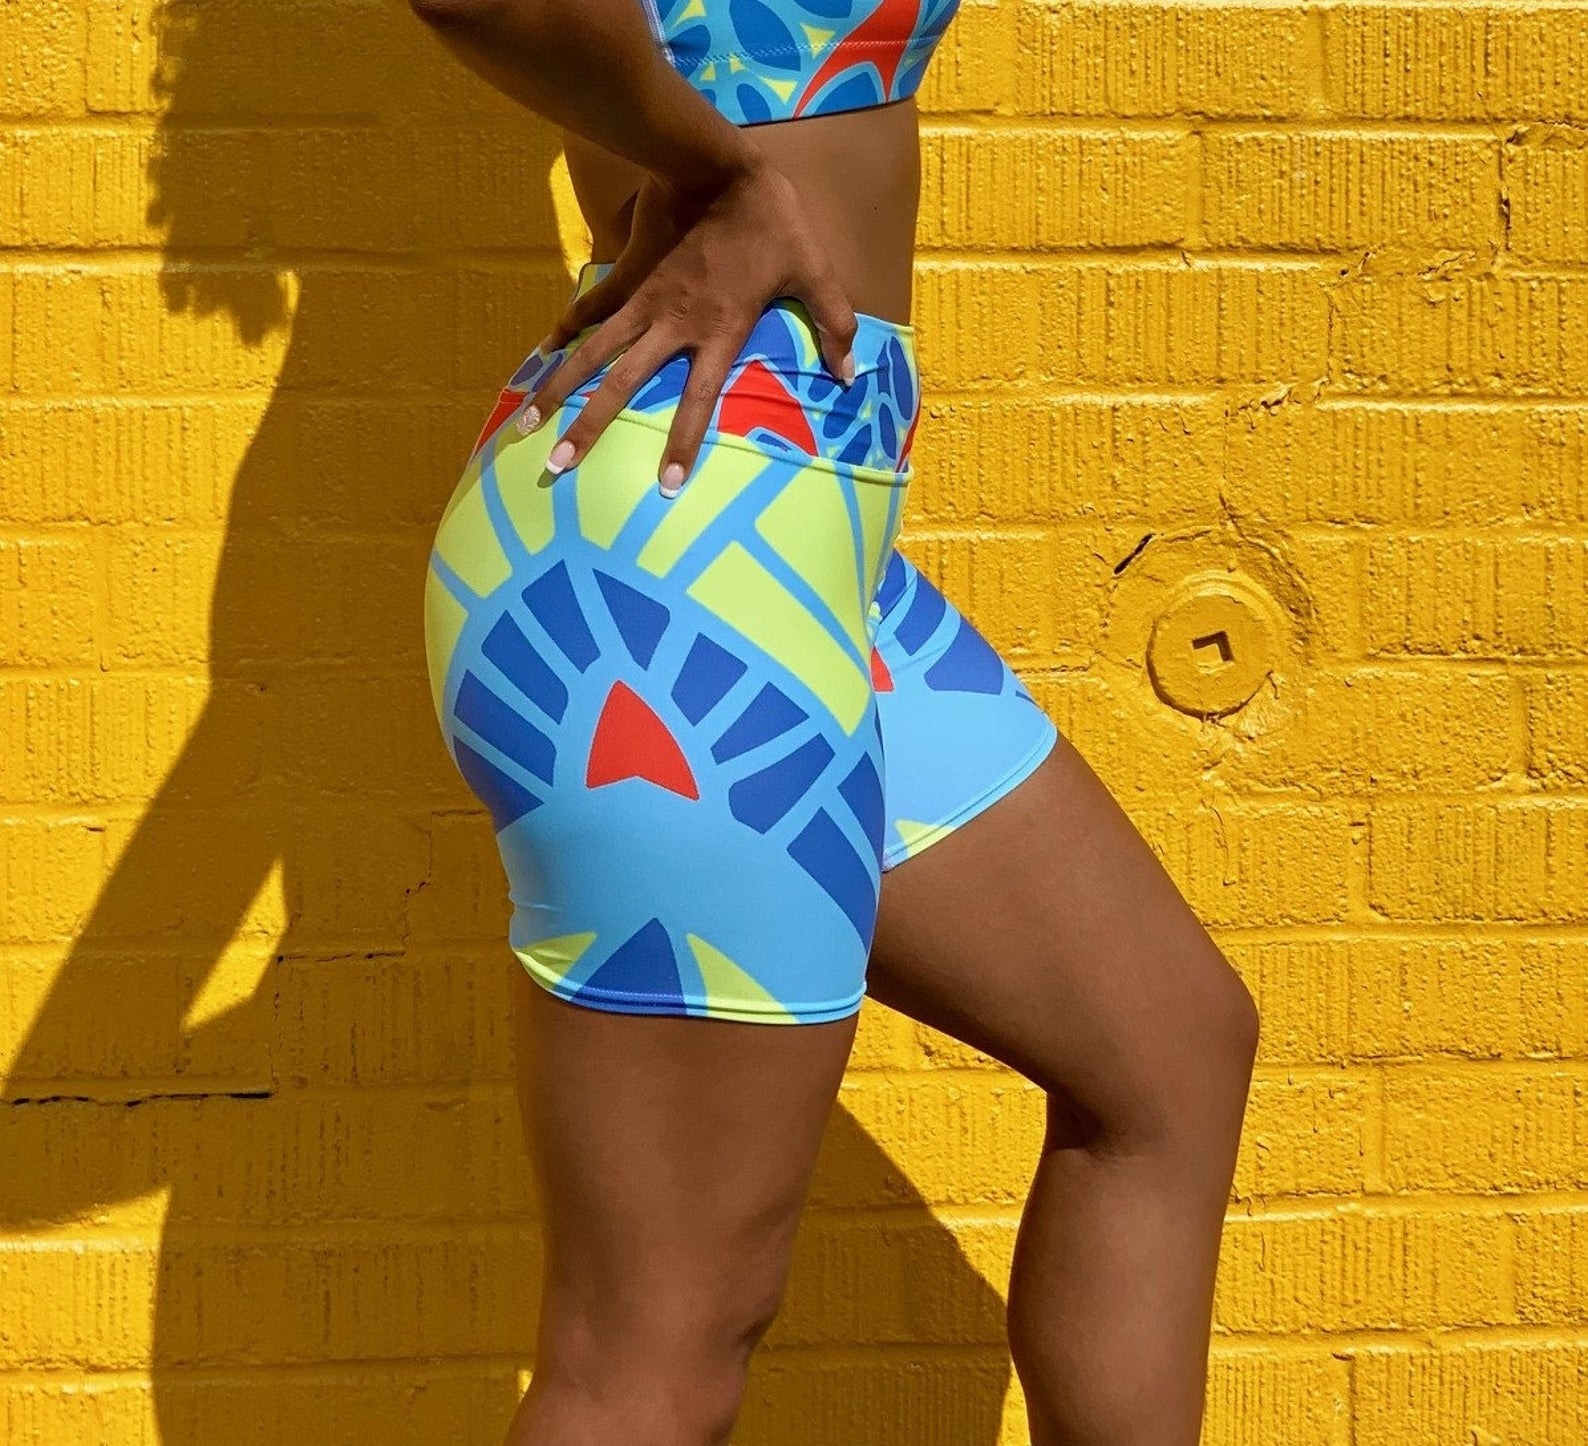 Model wearing the booty shorts in light blue with a dark blue, red, and yellow graphic pattern